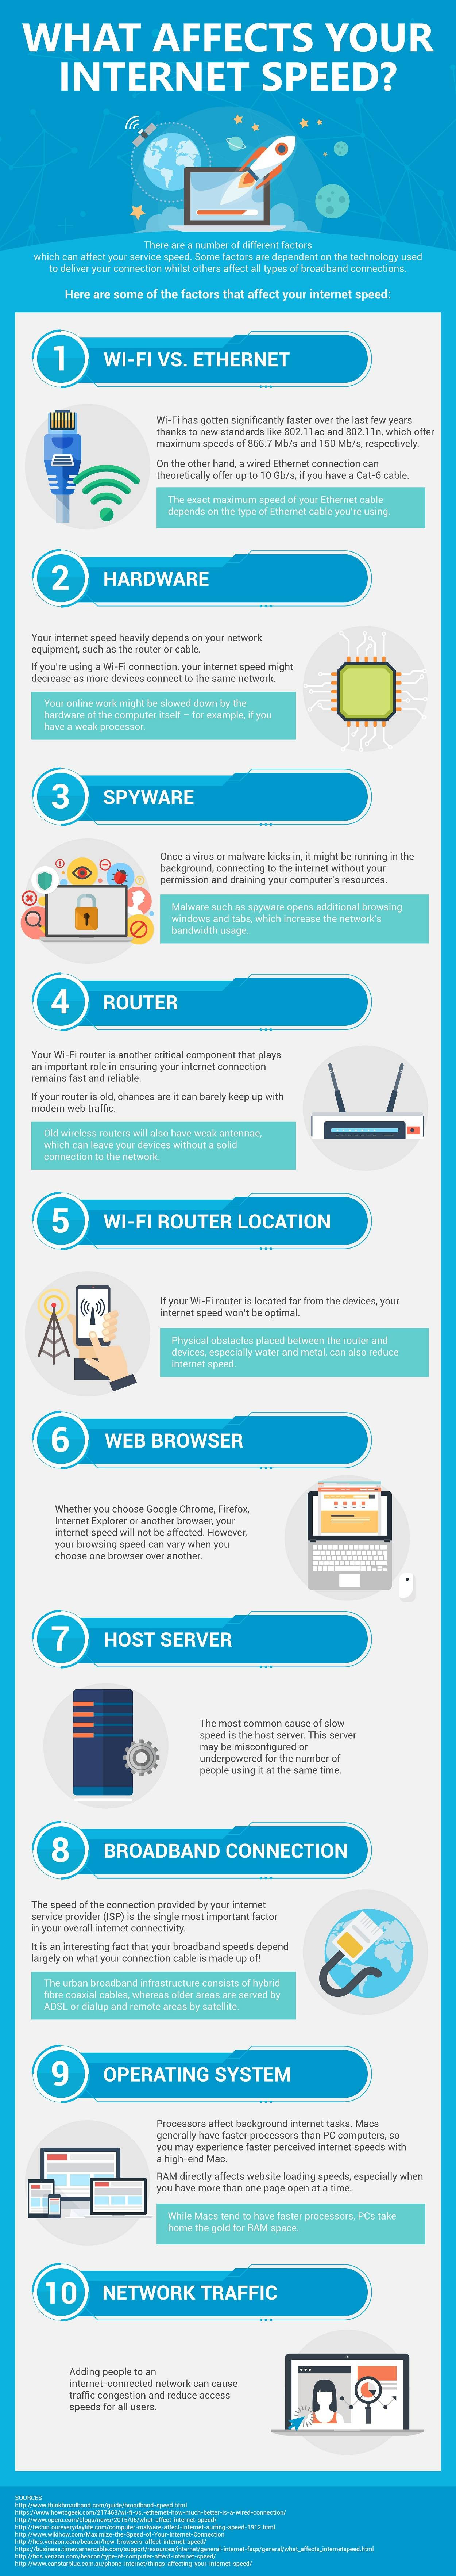 What Affects Your Internet Speed